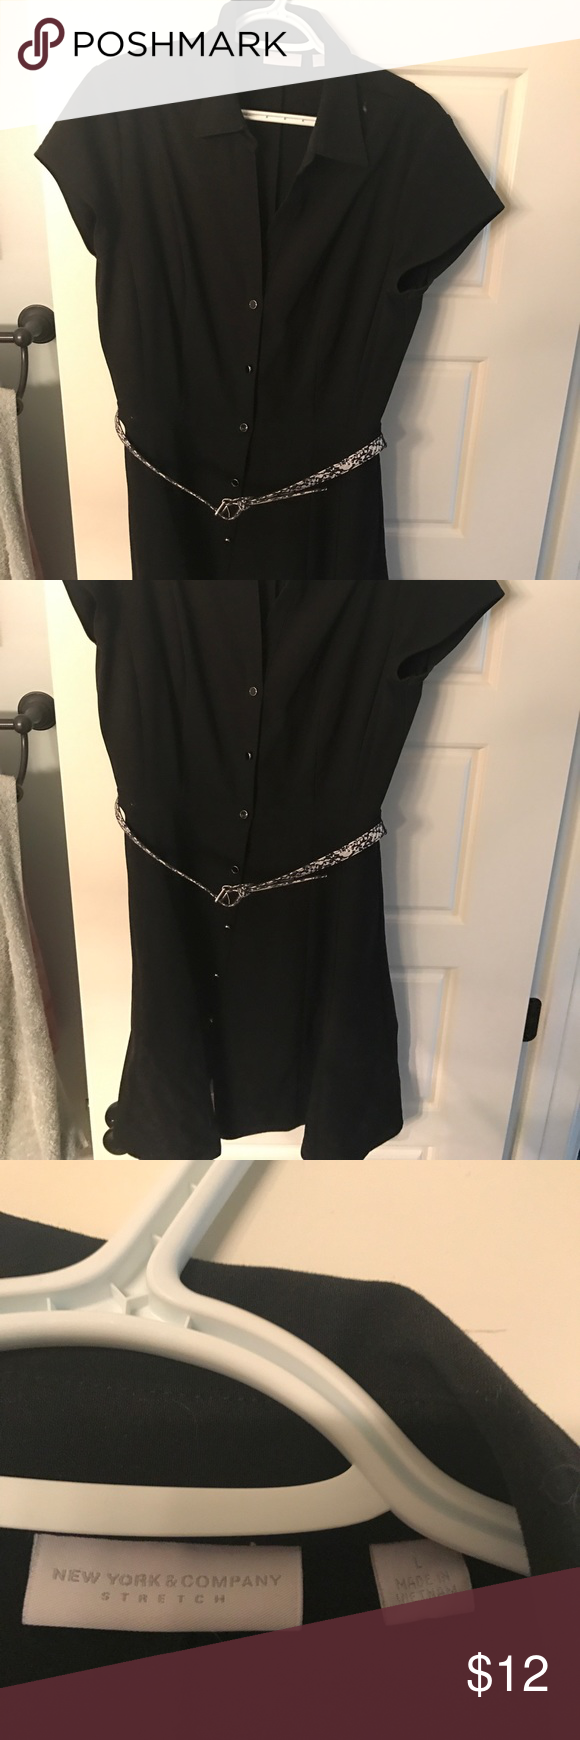 New York and Company black dress Large black New York and Company dress. Very good for work! I wore this maybe 5 times. It has a leopard belt As well. Buttons going down the front and collared neckline Dresses Midi